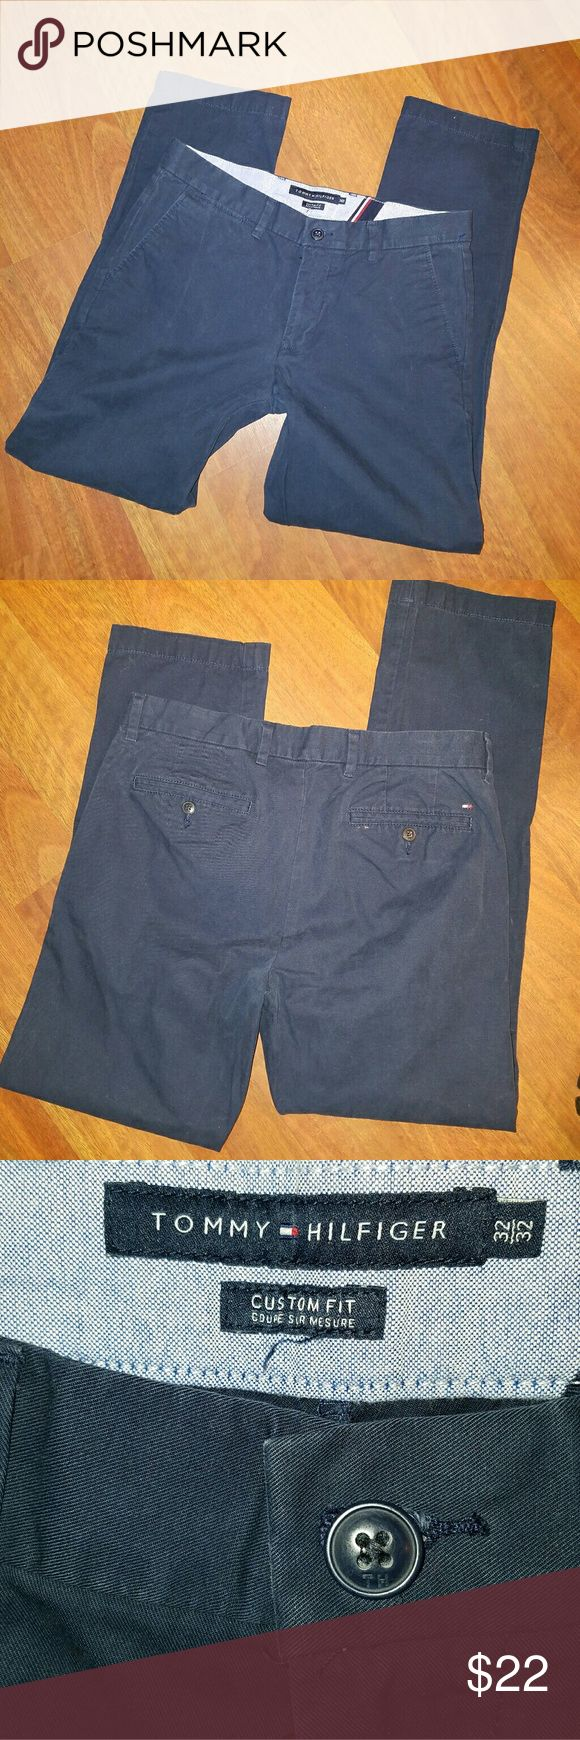 Tommy Hilfiger Navy Blue Khakis 32 x 32 These are in excellent condition! No holes, stains or rips. Brand: Tommy Hilfiger Plain front khakis Color: Navy Blue Size: 32 x 32 Tommy Hilfiger Pants Chinos & Khakis